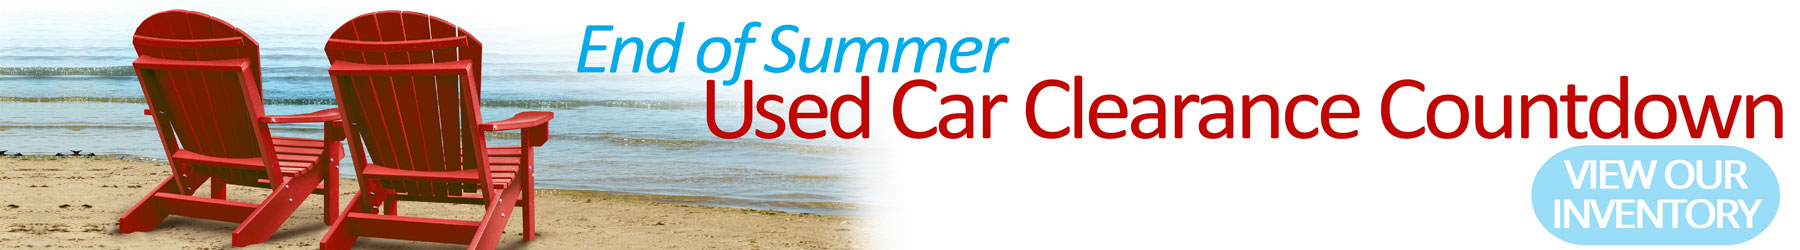 END-OF-SUMMER-BANNER